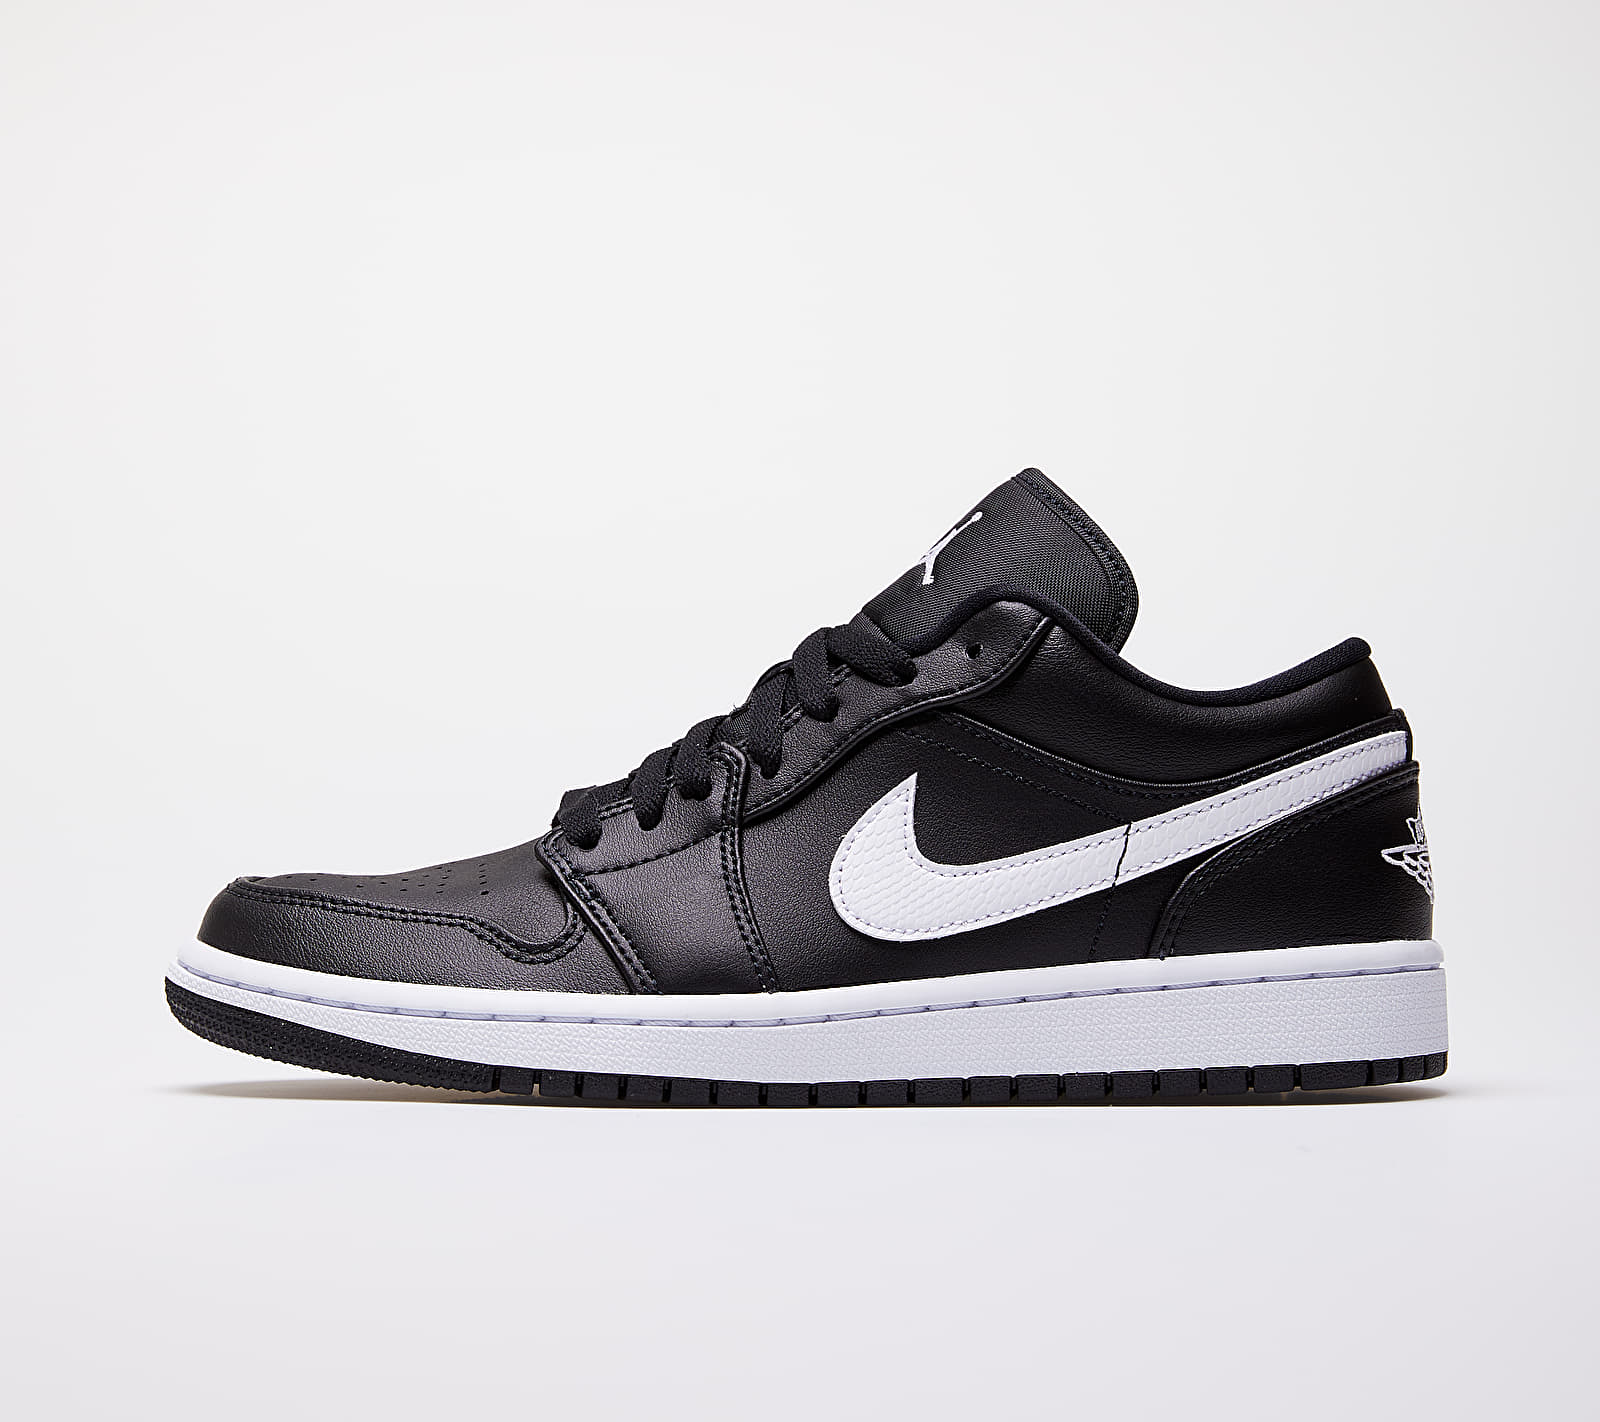 Jordan Wmns Air 1 Low Black/ White-White EUR 36.5